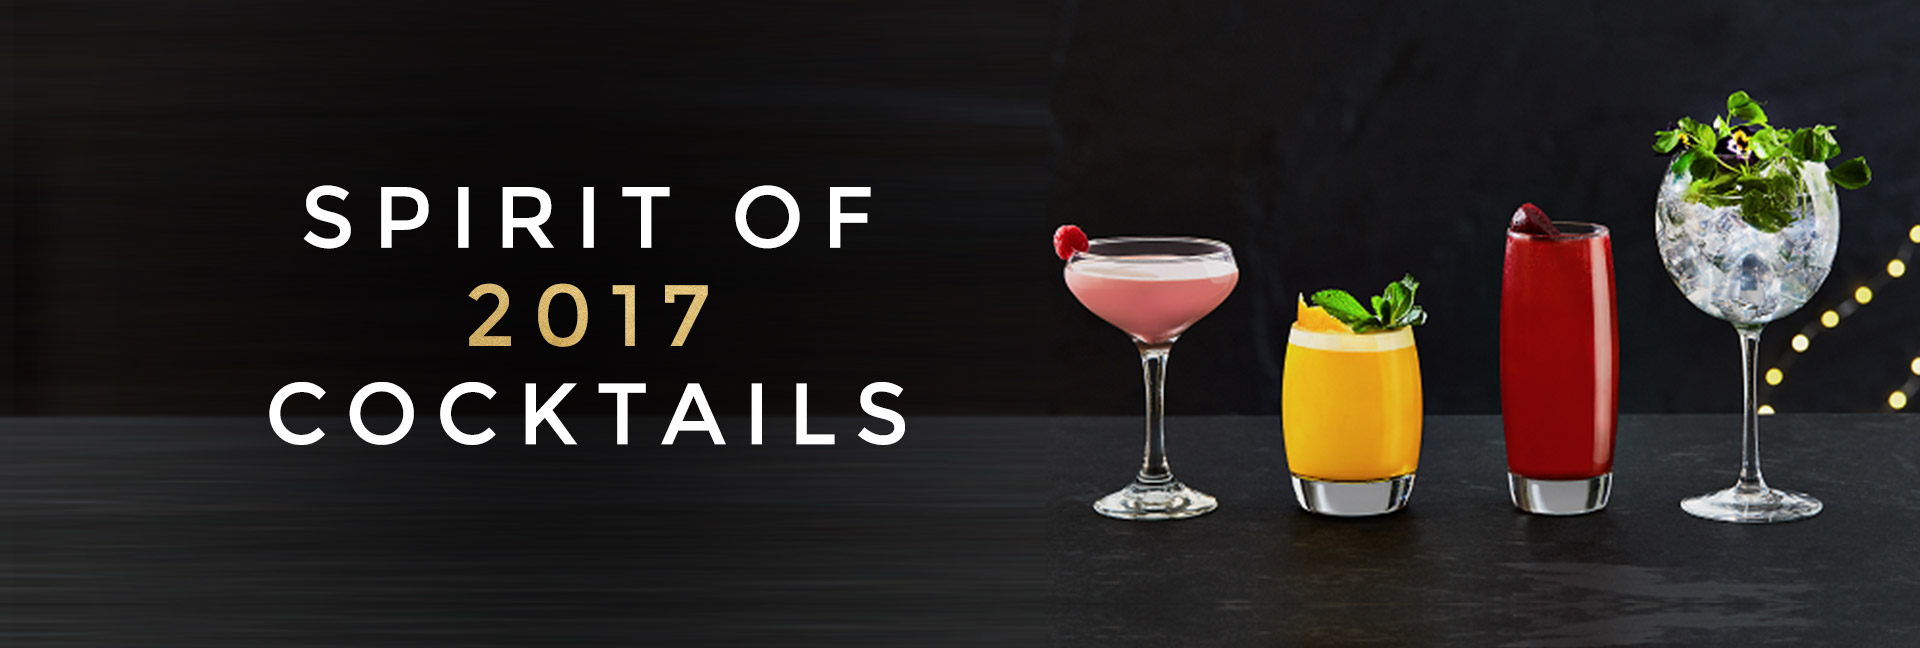 Spirit of 2017 cocktails at All Bar One Butlers Wharf